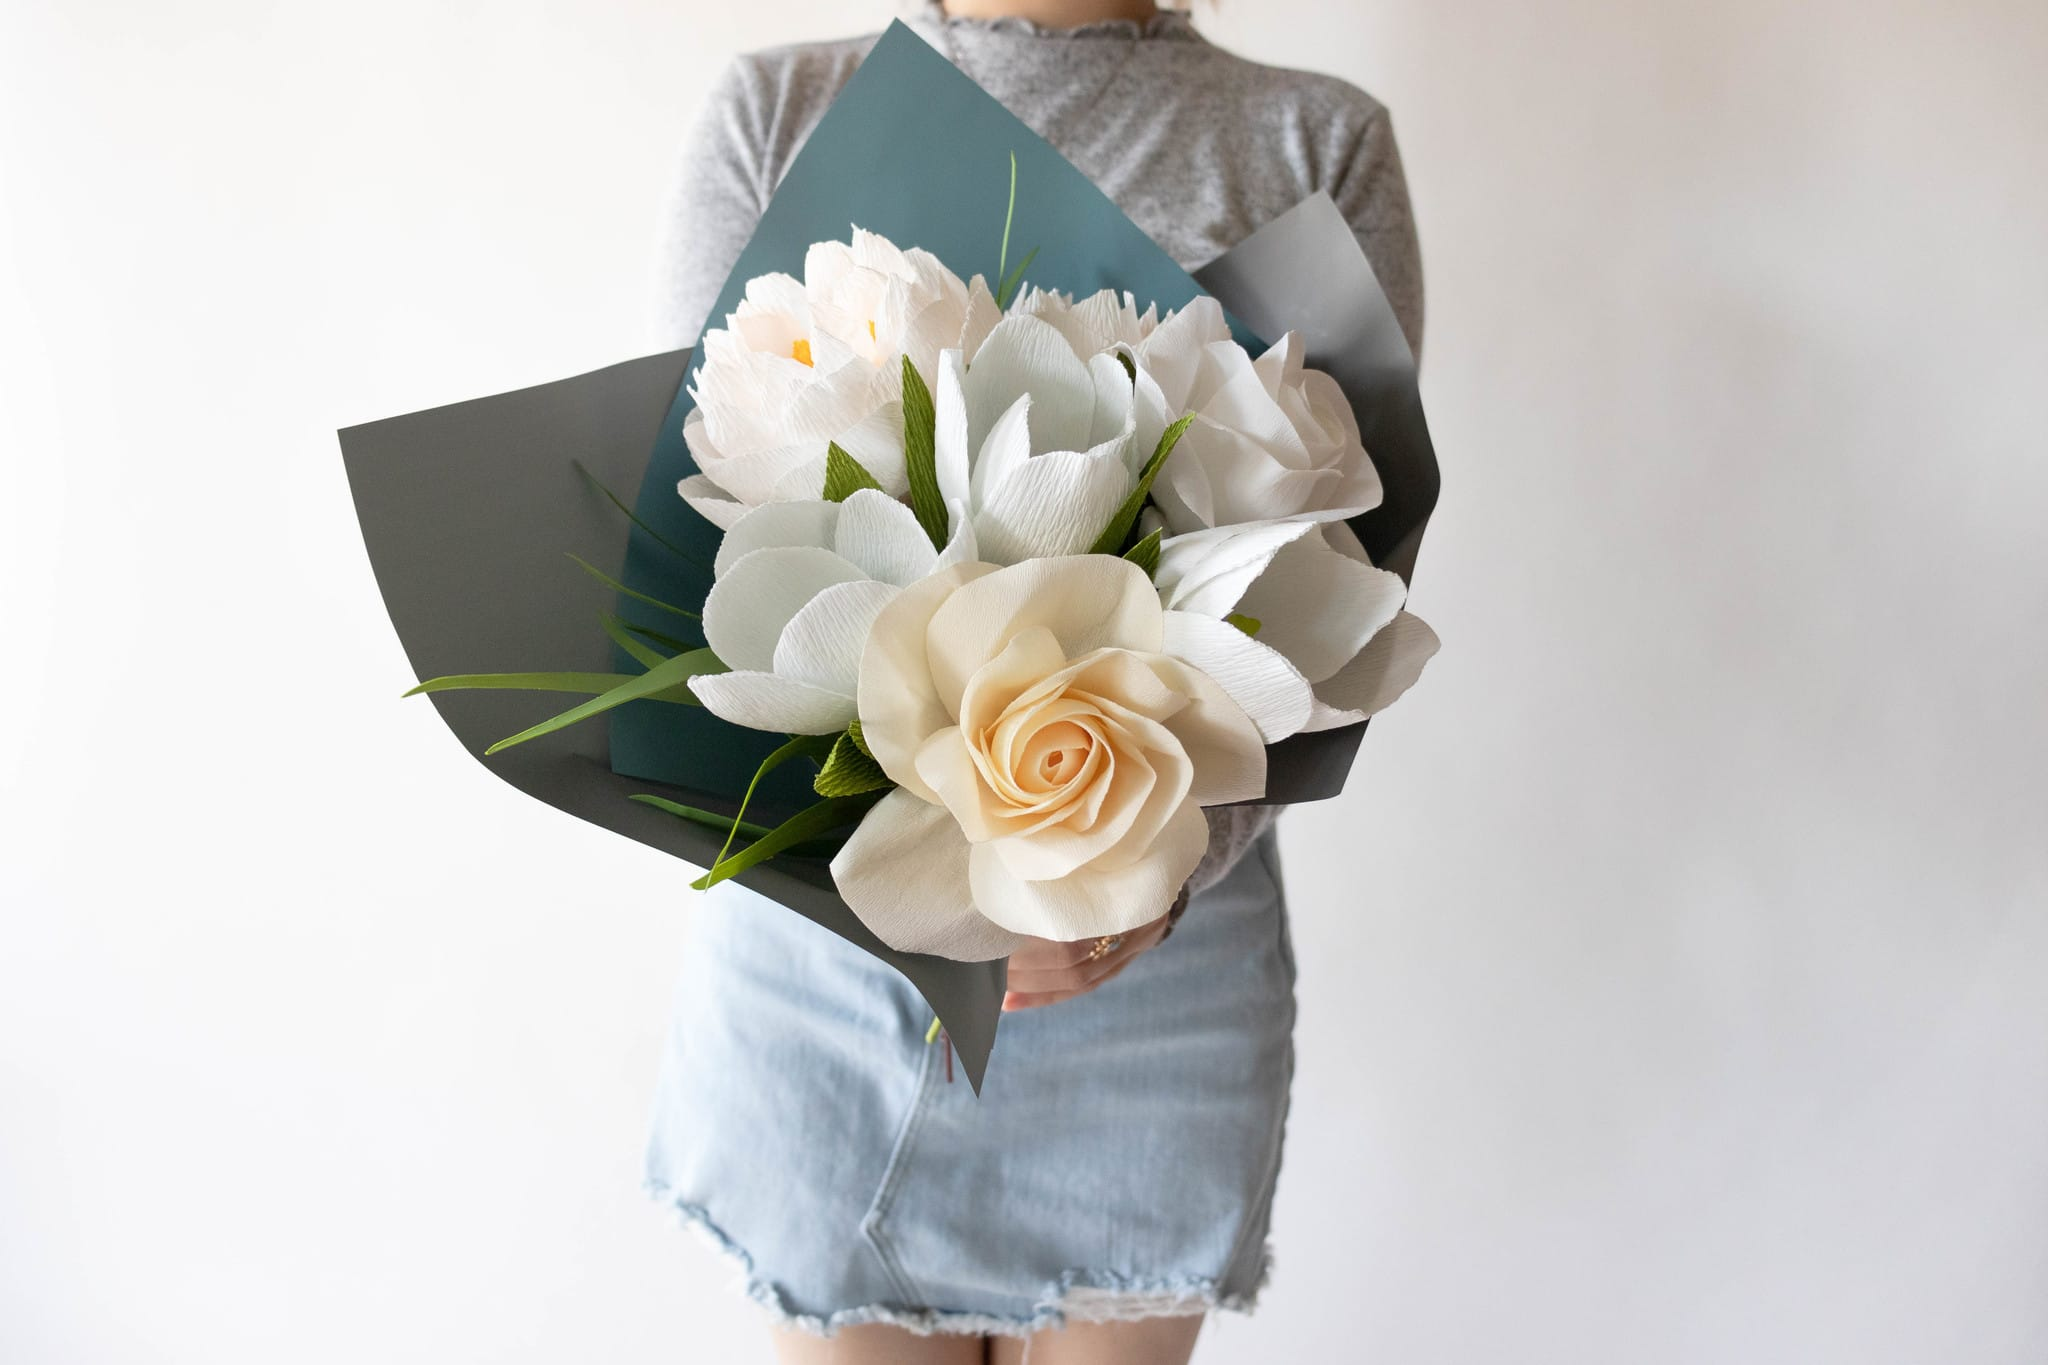 Florist holding a bouquet of paper flowers paired with faux greenery